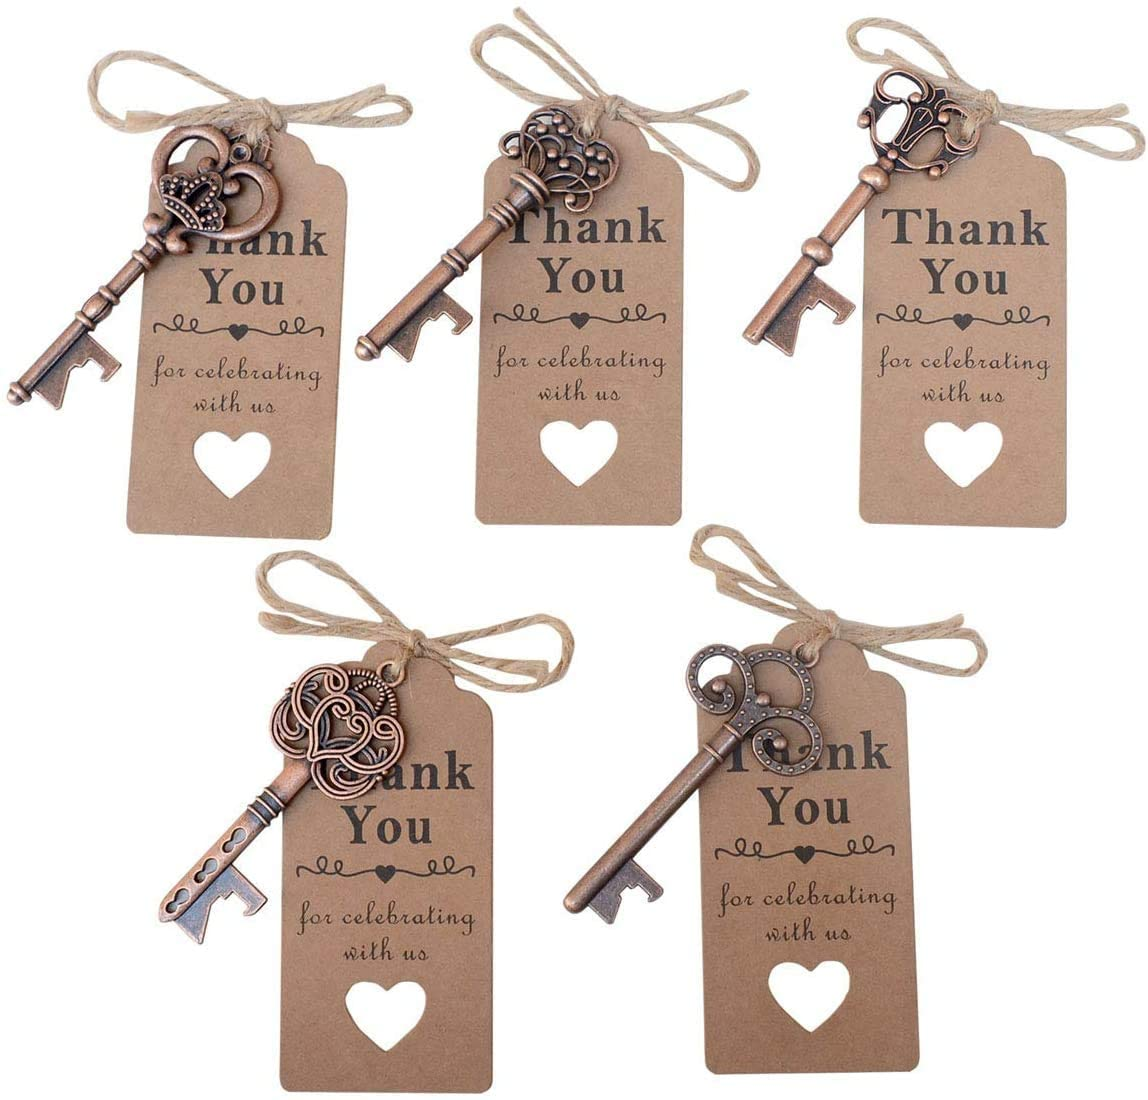 Yansanido 50pcs Copper Skeleton Key Bottle Opener Wedding Party Favor Souvenir Gift with 100 Escort Tag and Jute Rope(50pcs Copper)